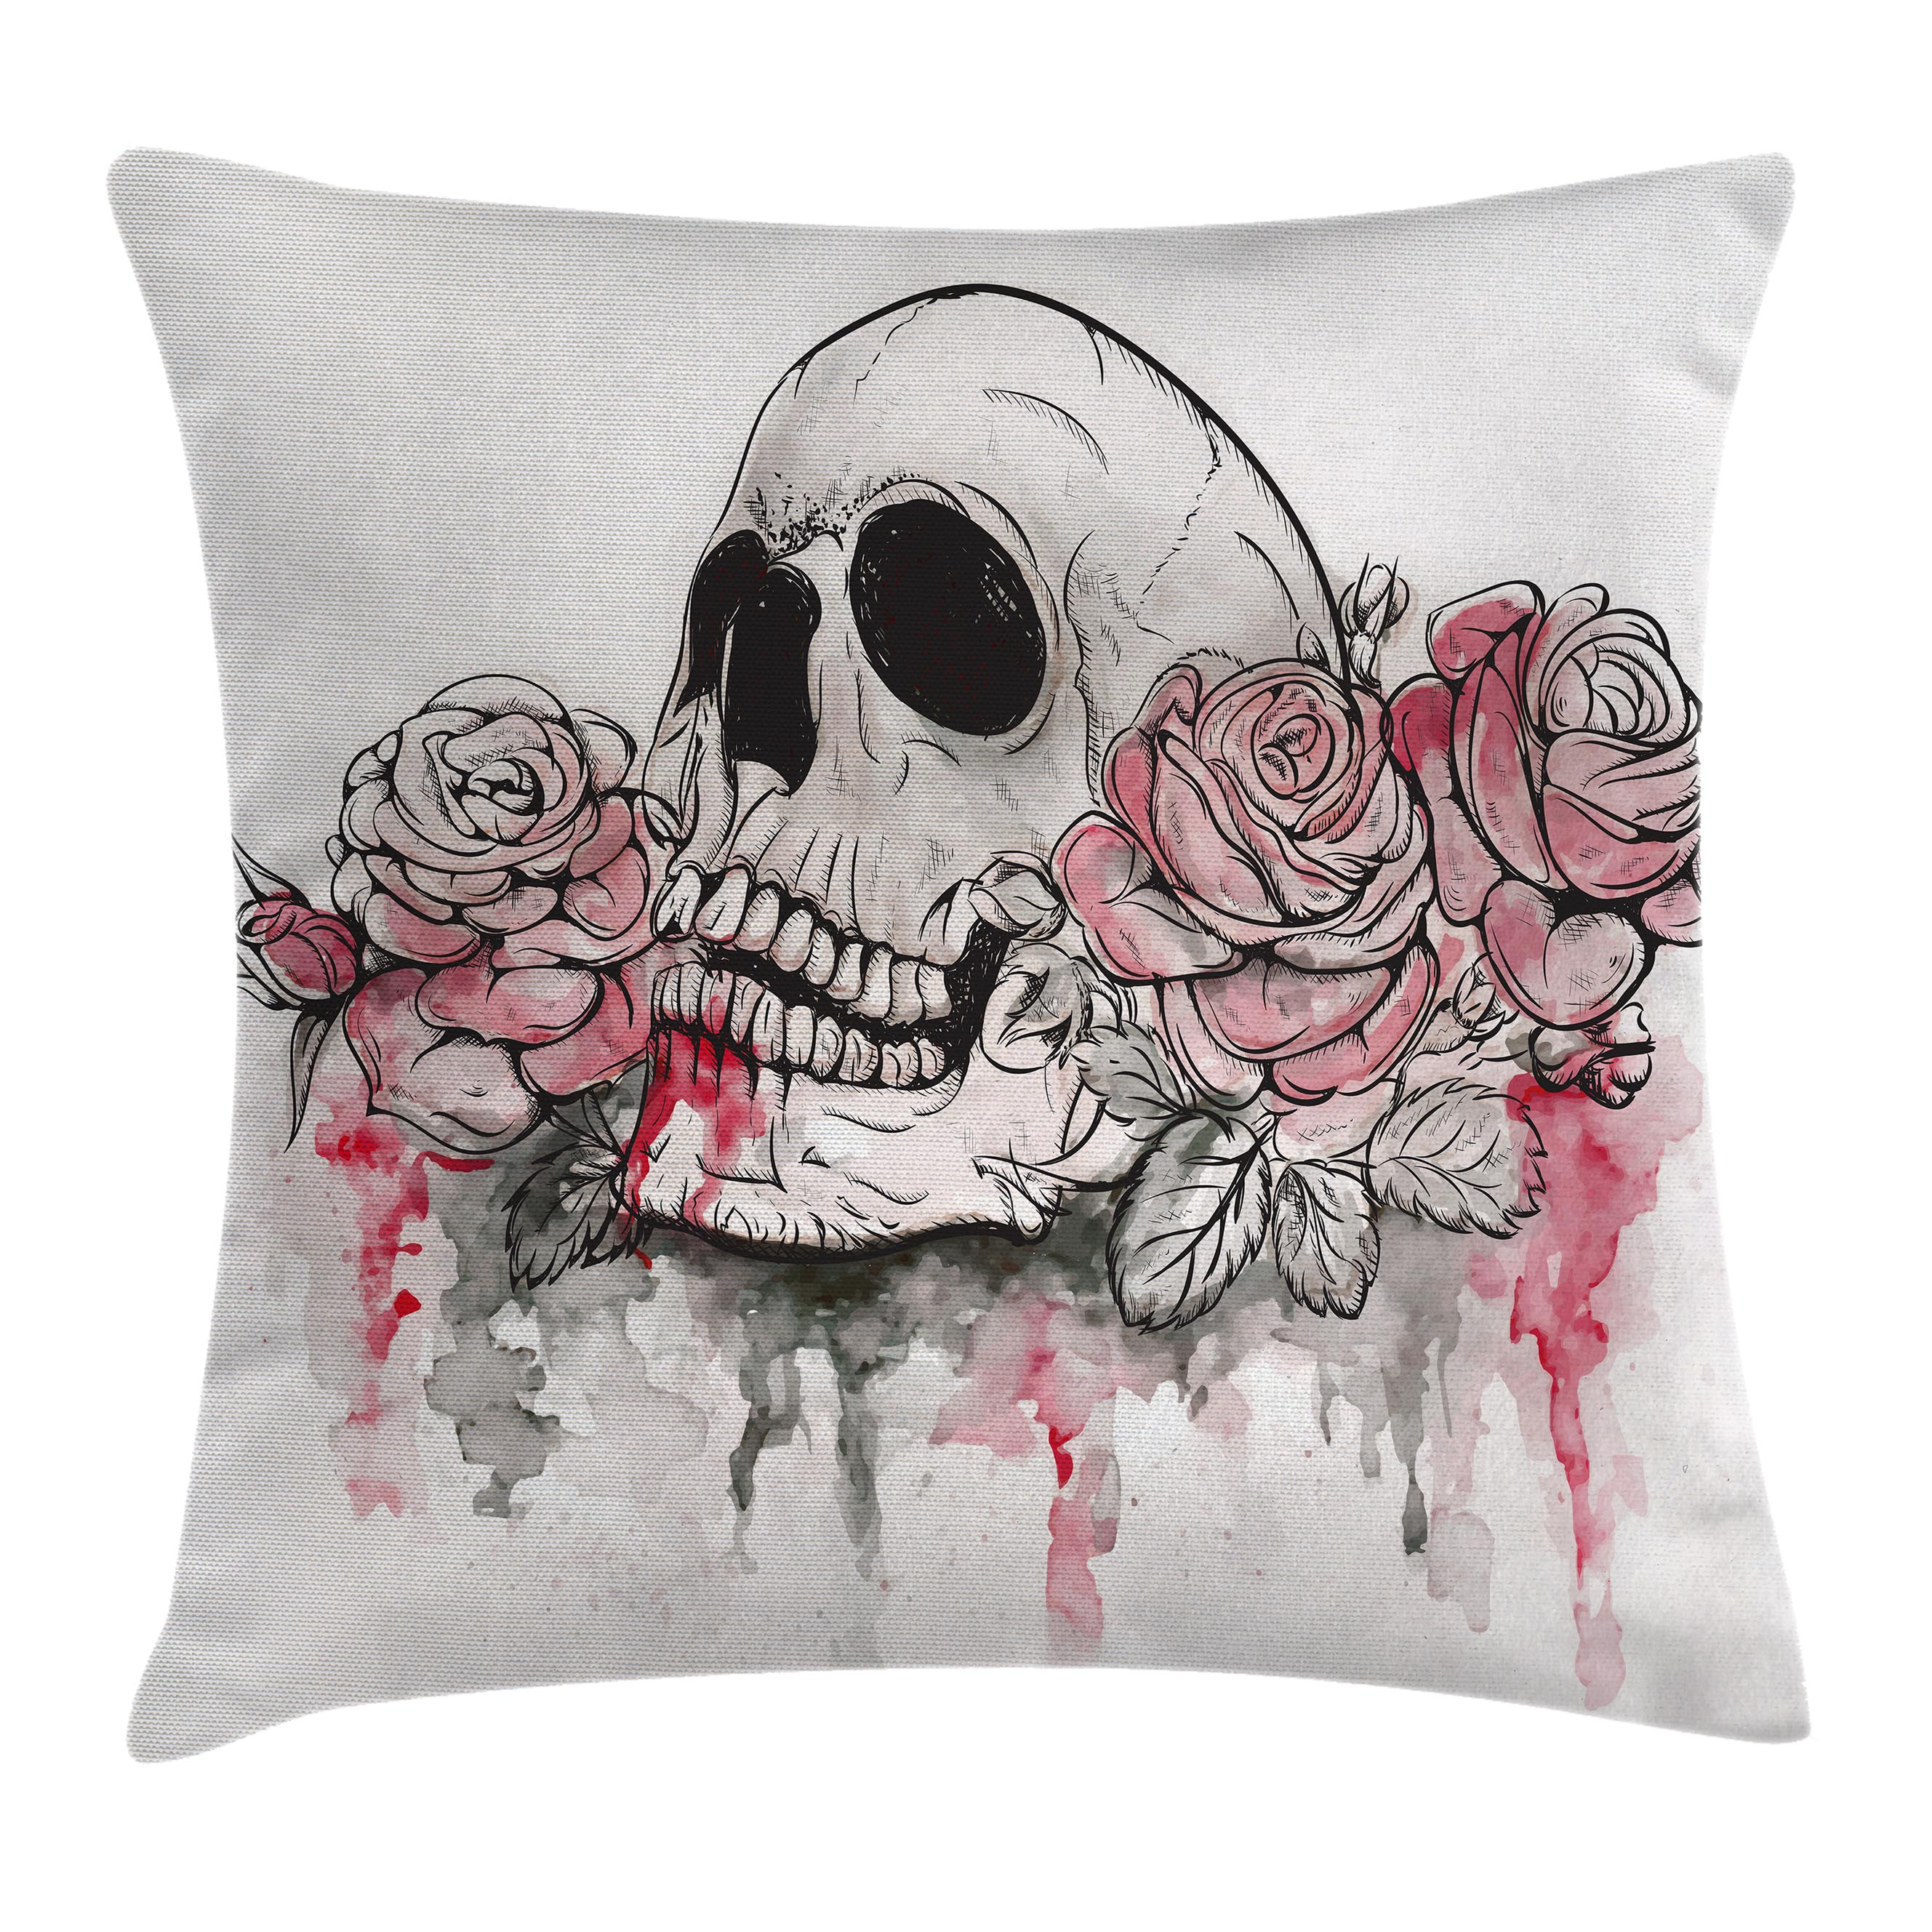 Day Of The Dead Decor Throw Pillow Cushion Cover, Print of Skull Dead with Romantic Roses Celebration Day, Decorative Square Accent Pillow Case, 20 X 20 Inches, White Light Pink Black, by Ambesonne